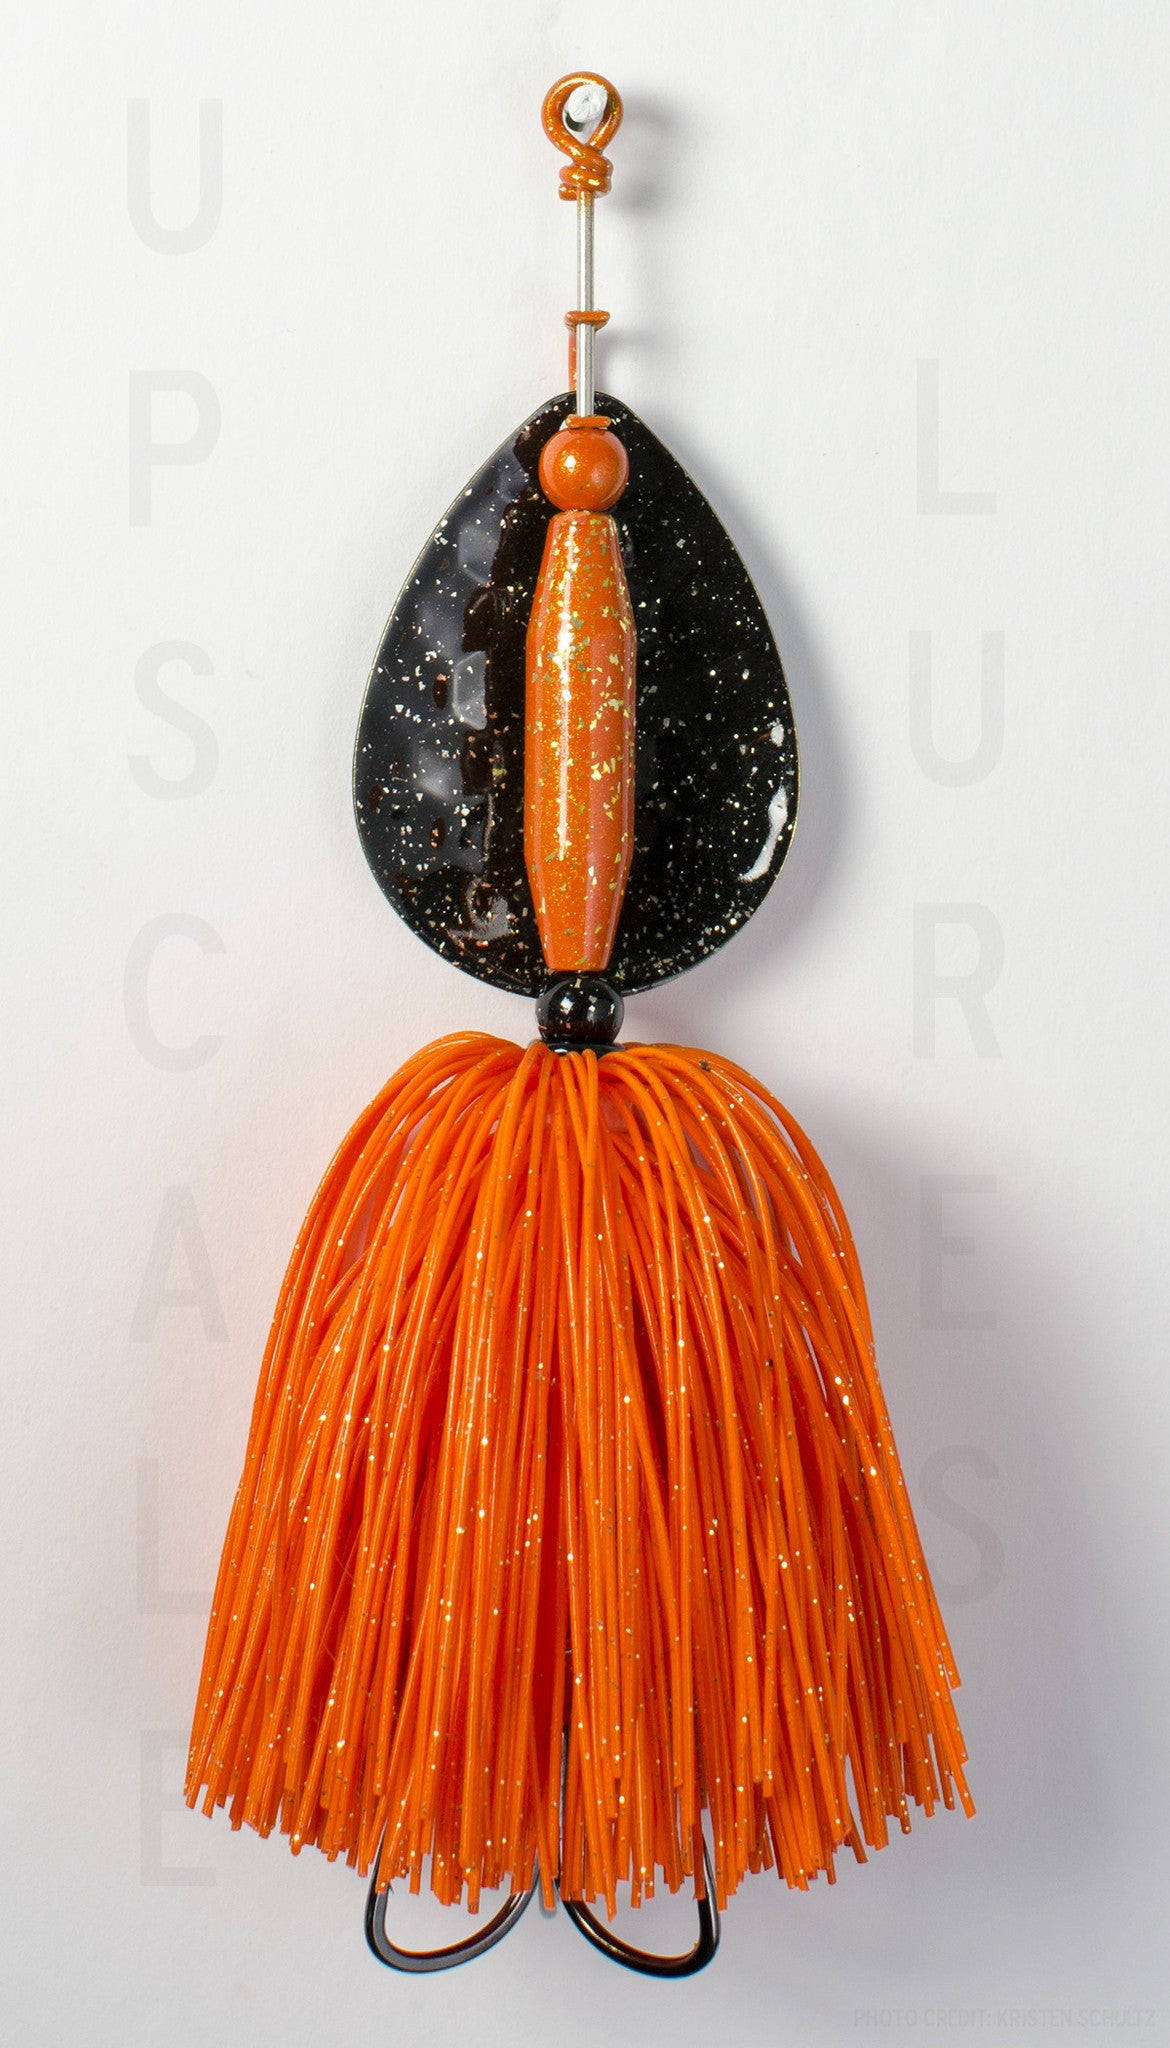 Nifty Fifty Spinner Bait Black/Orange 5.5 Inches